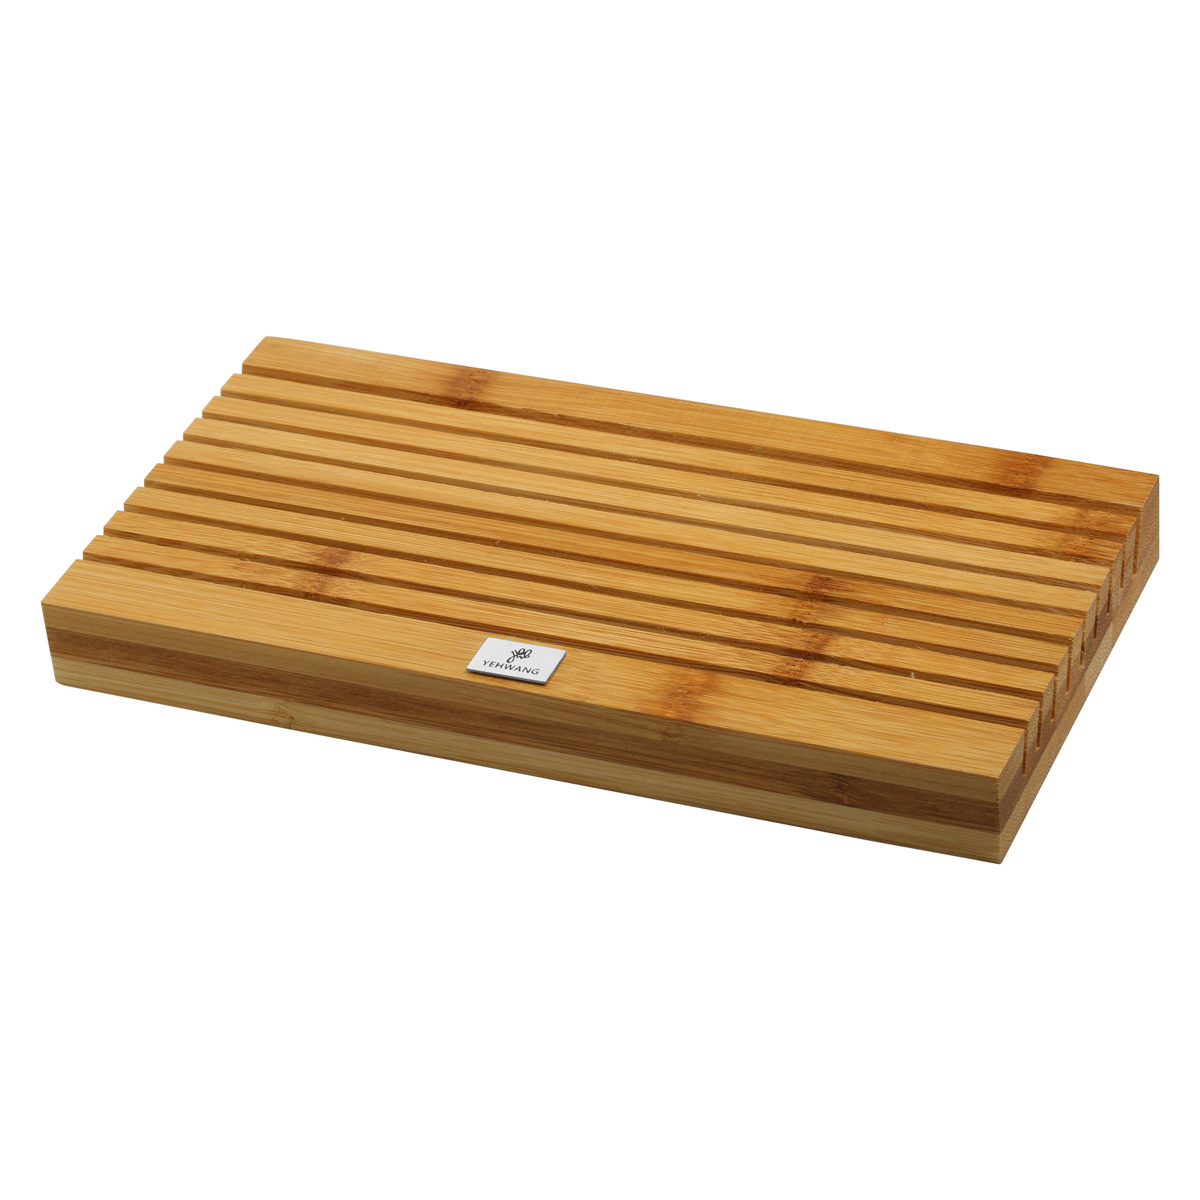 Mix and Match Display Base Bamboo Large